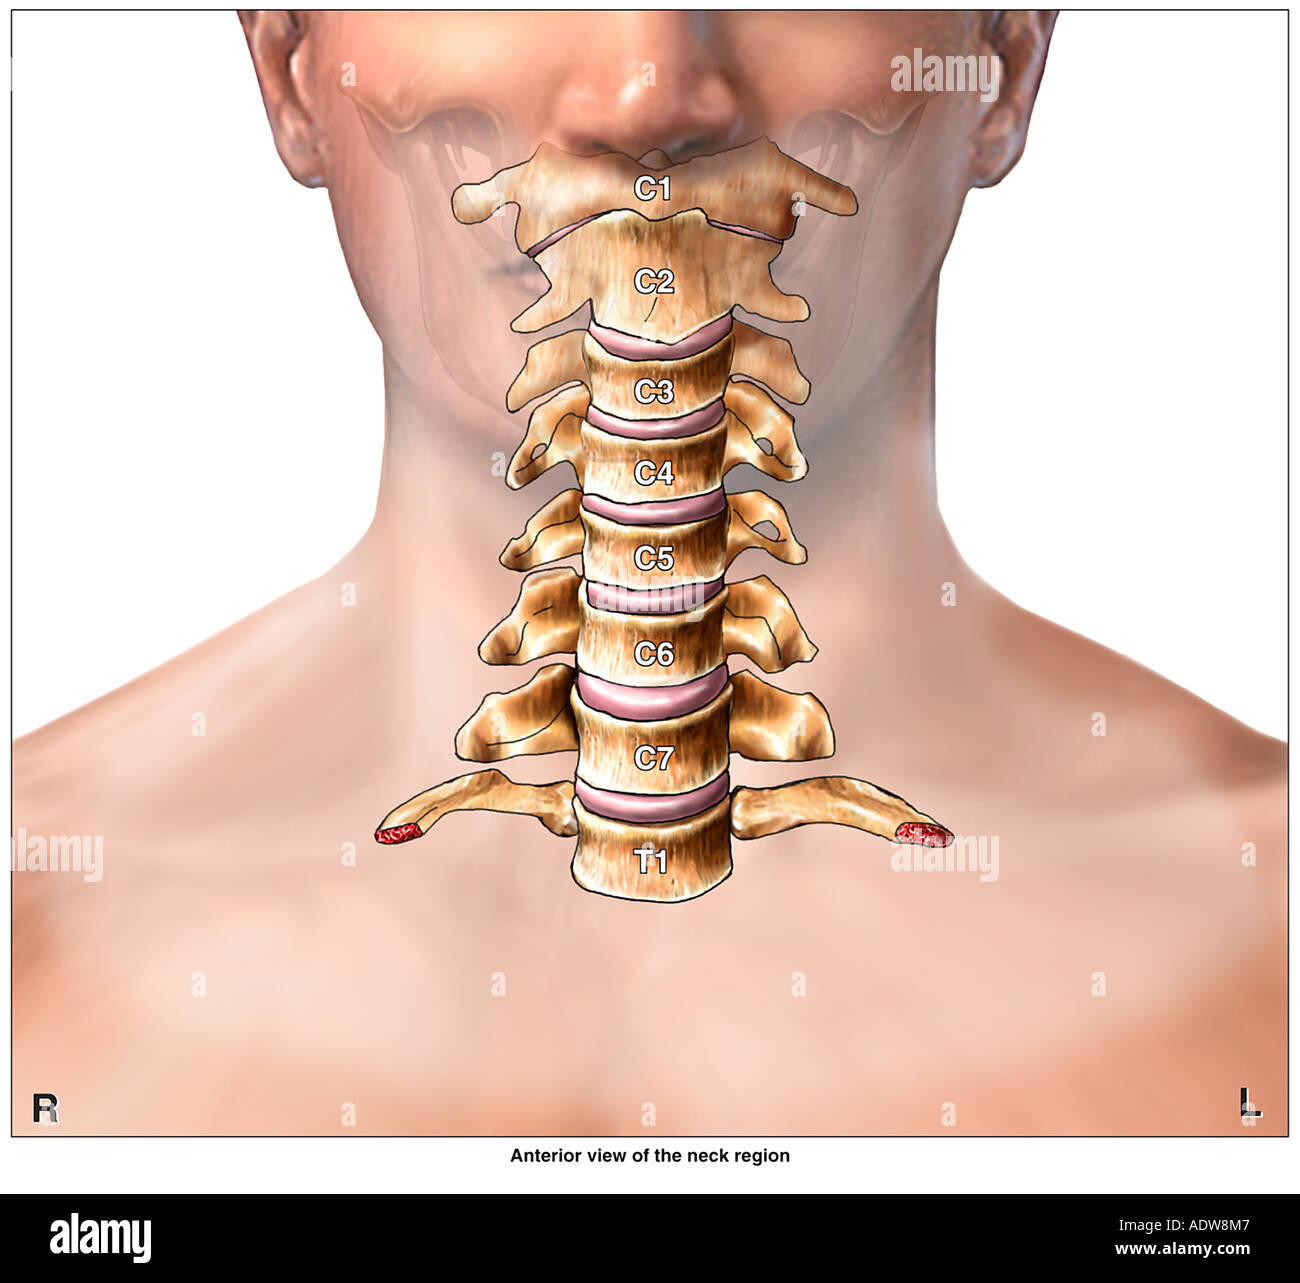 Neck Cervical Vertebrae Stock Photos Neck Cervical Vertebrae Stock